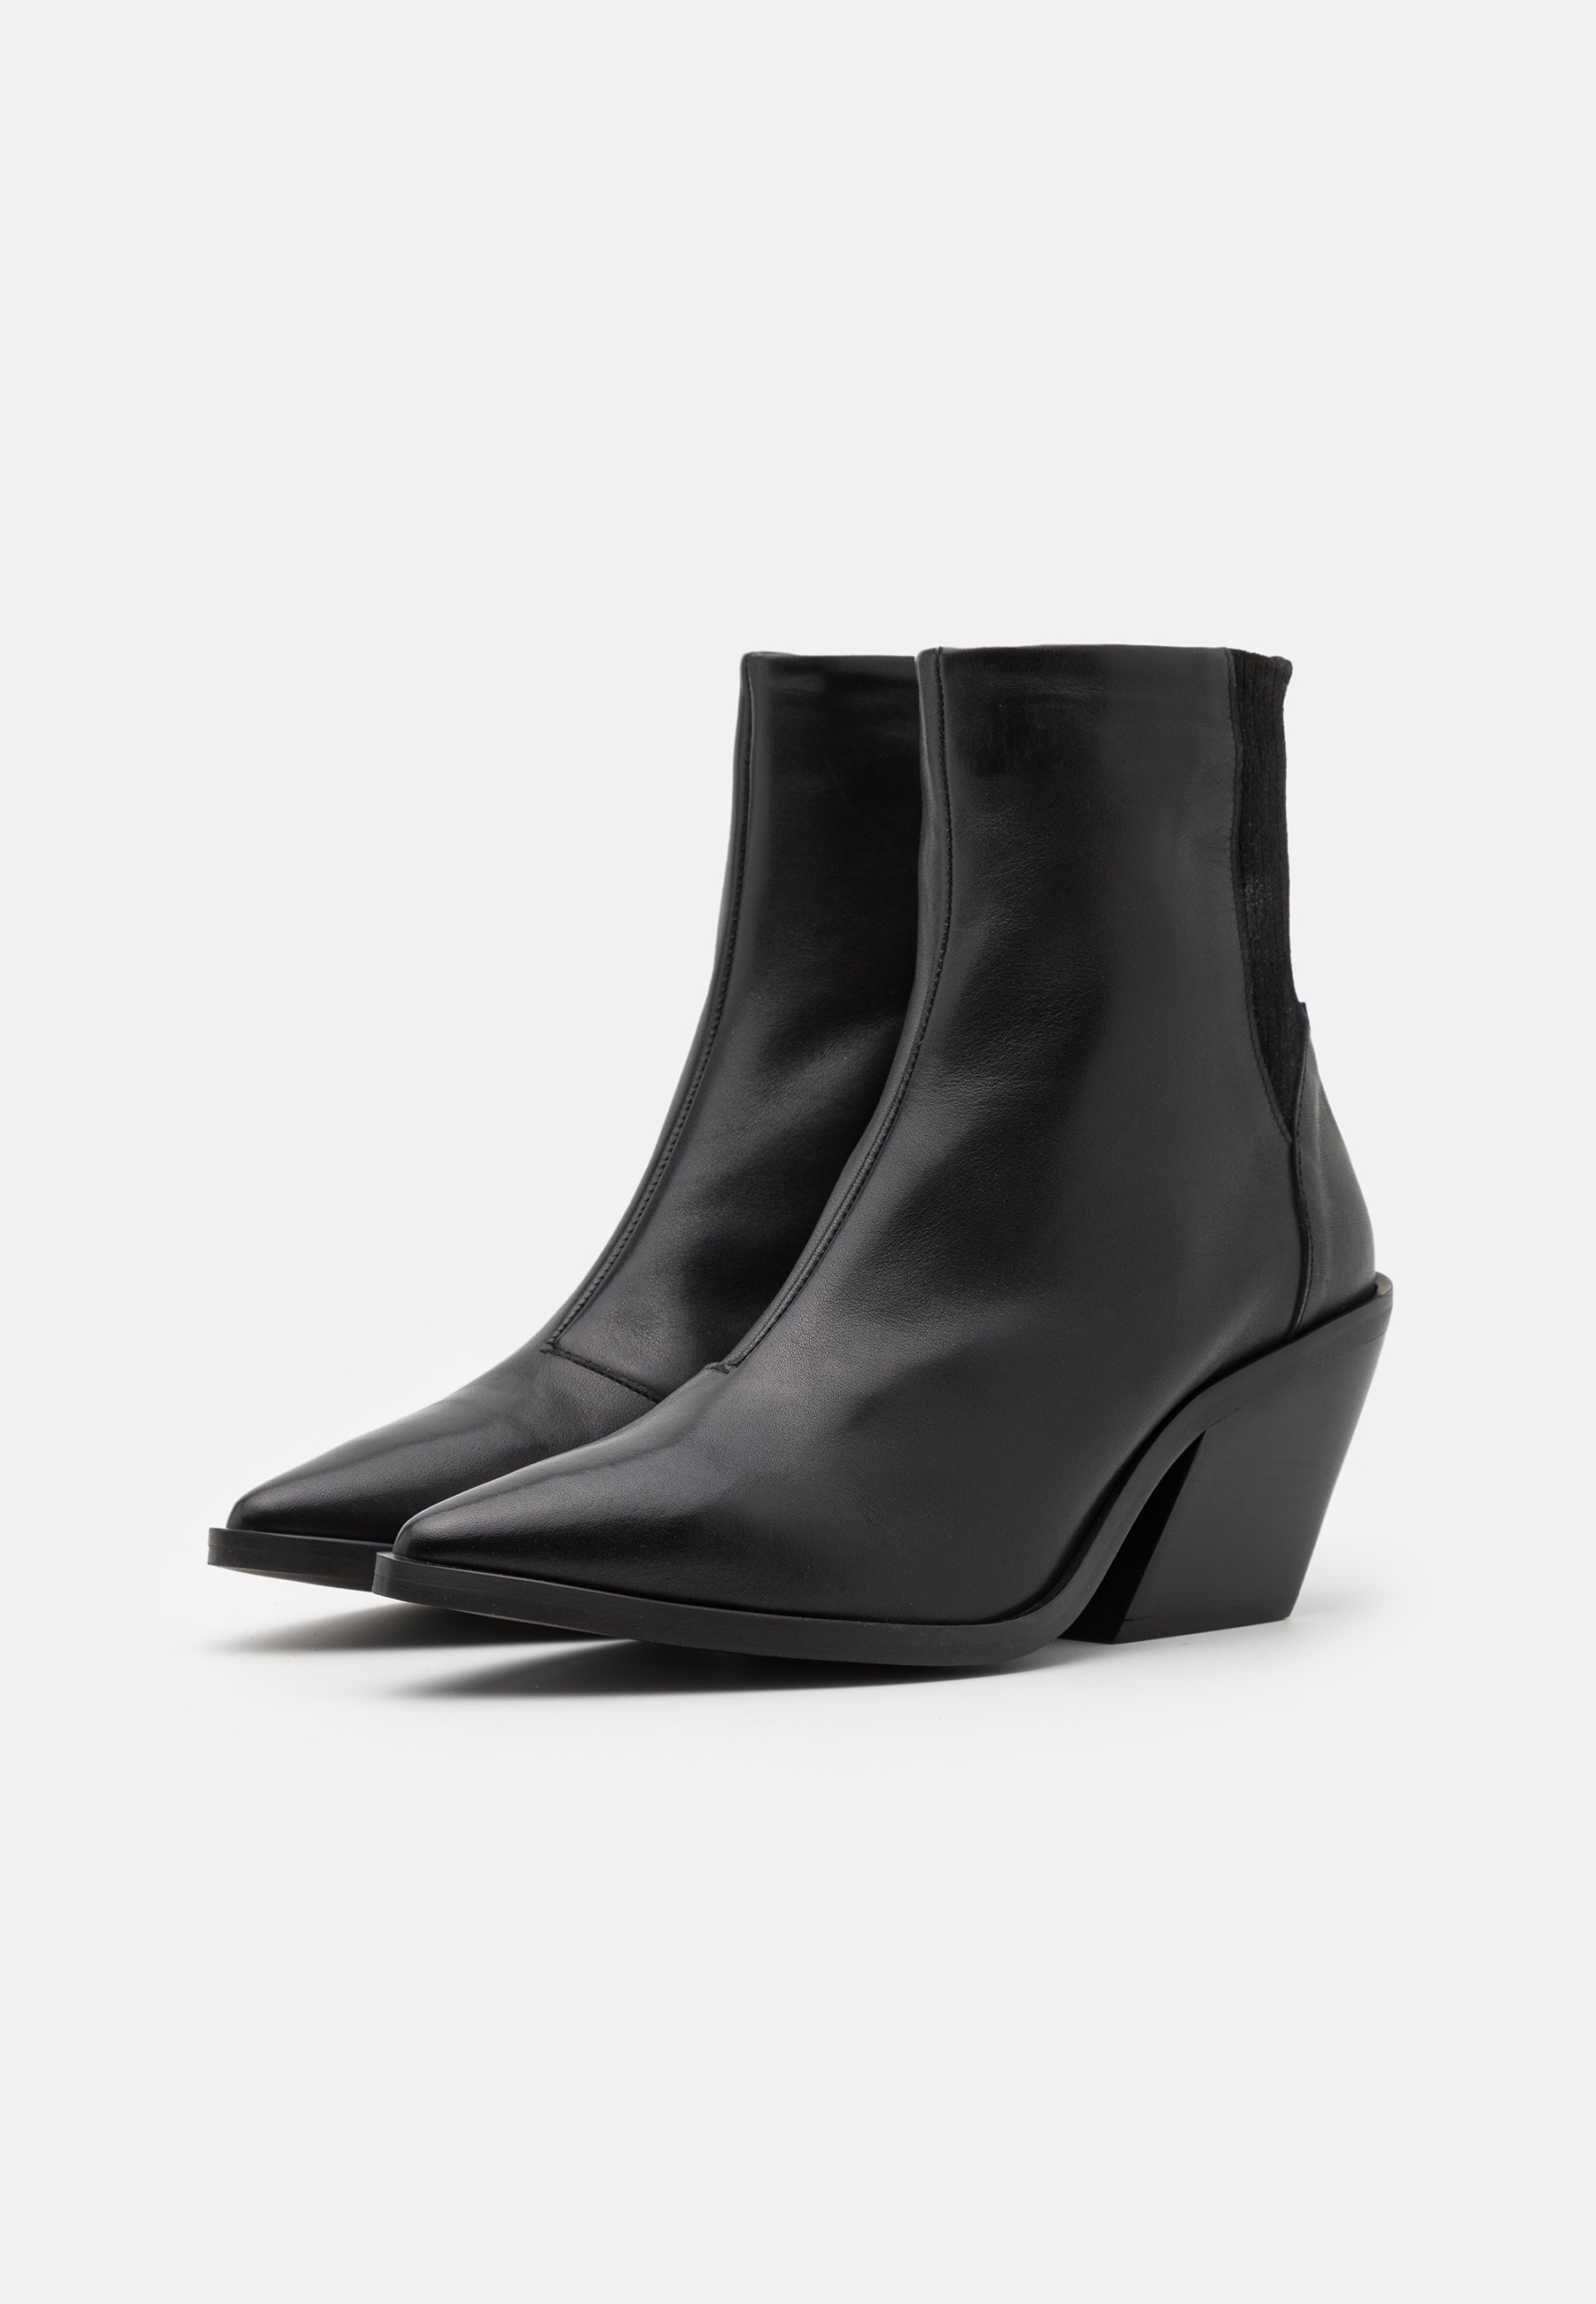 Cool Women's Shoes Zign Classic ankle boots black bkCTlYhns